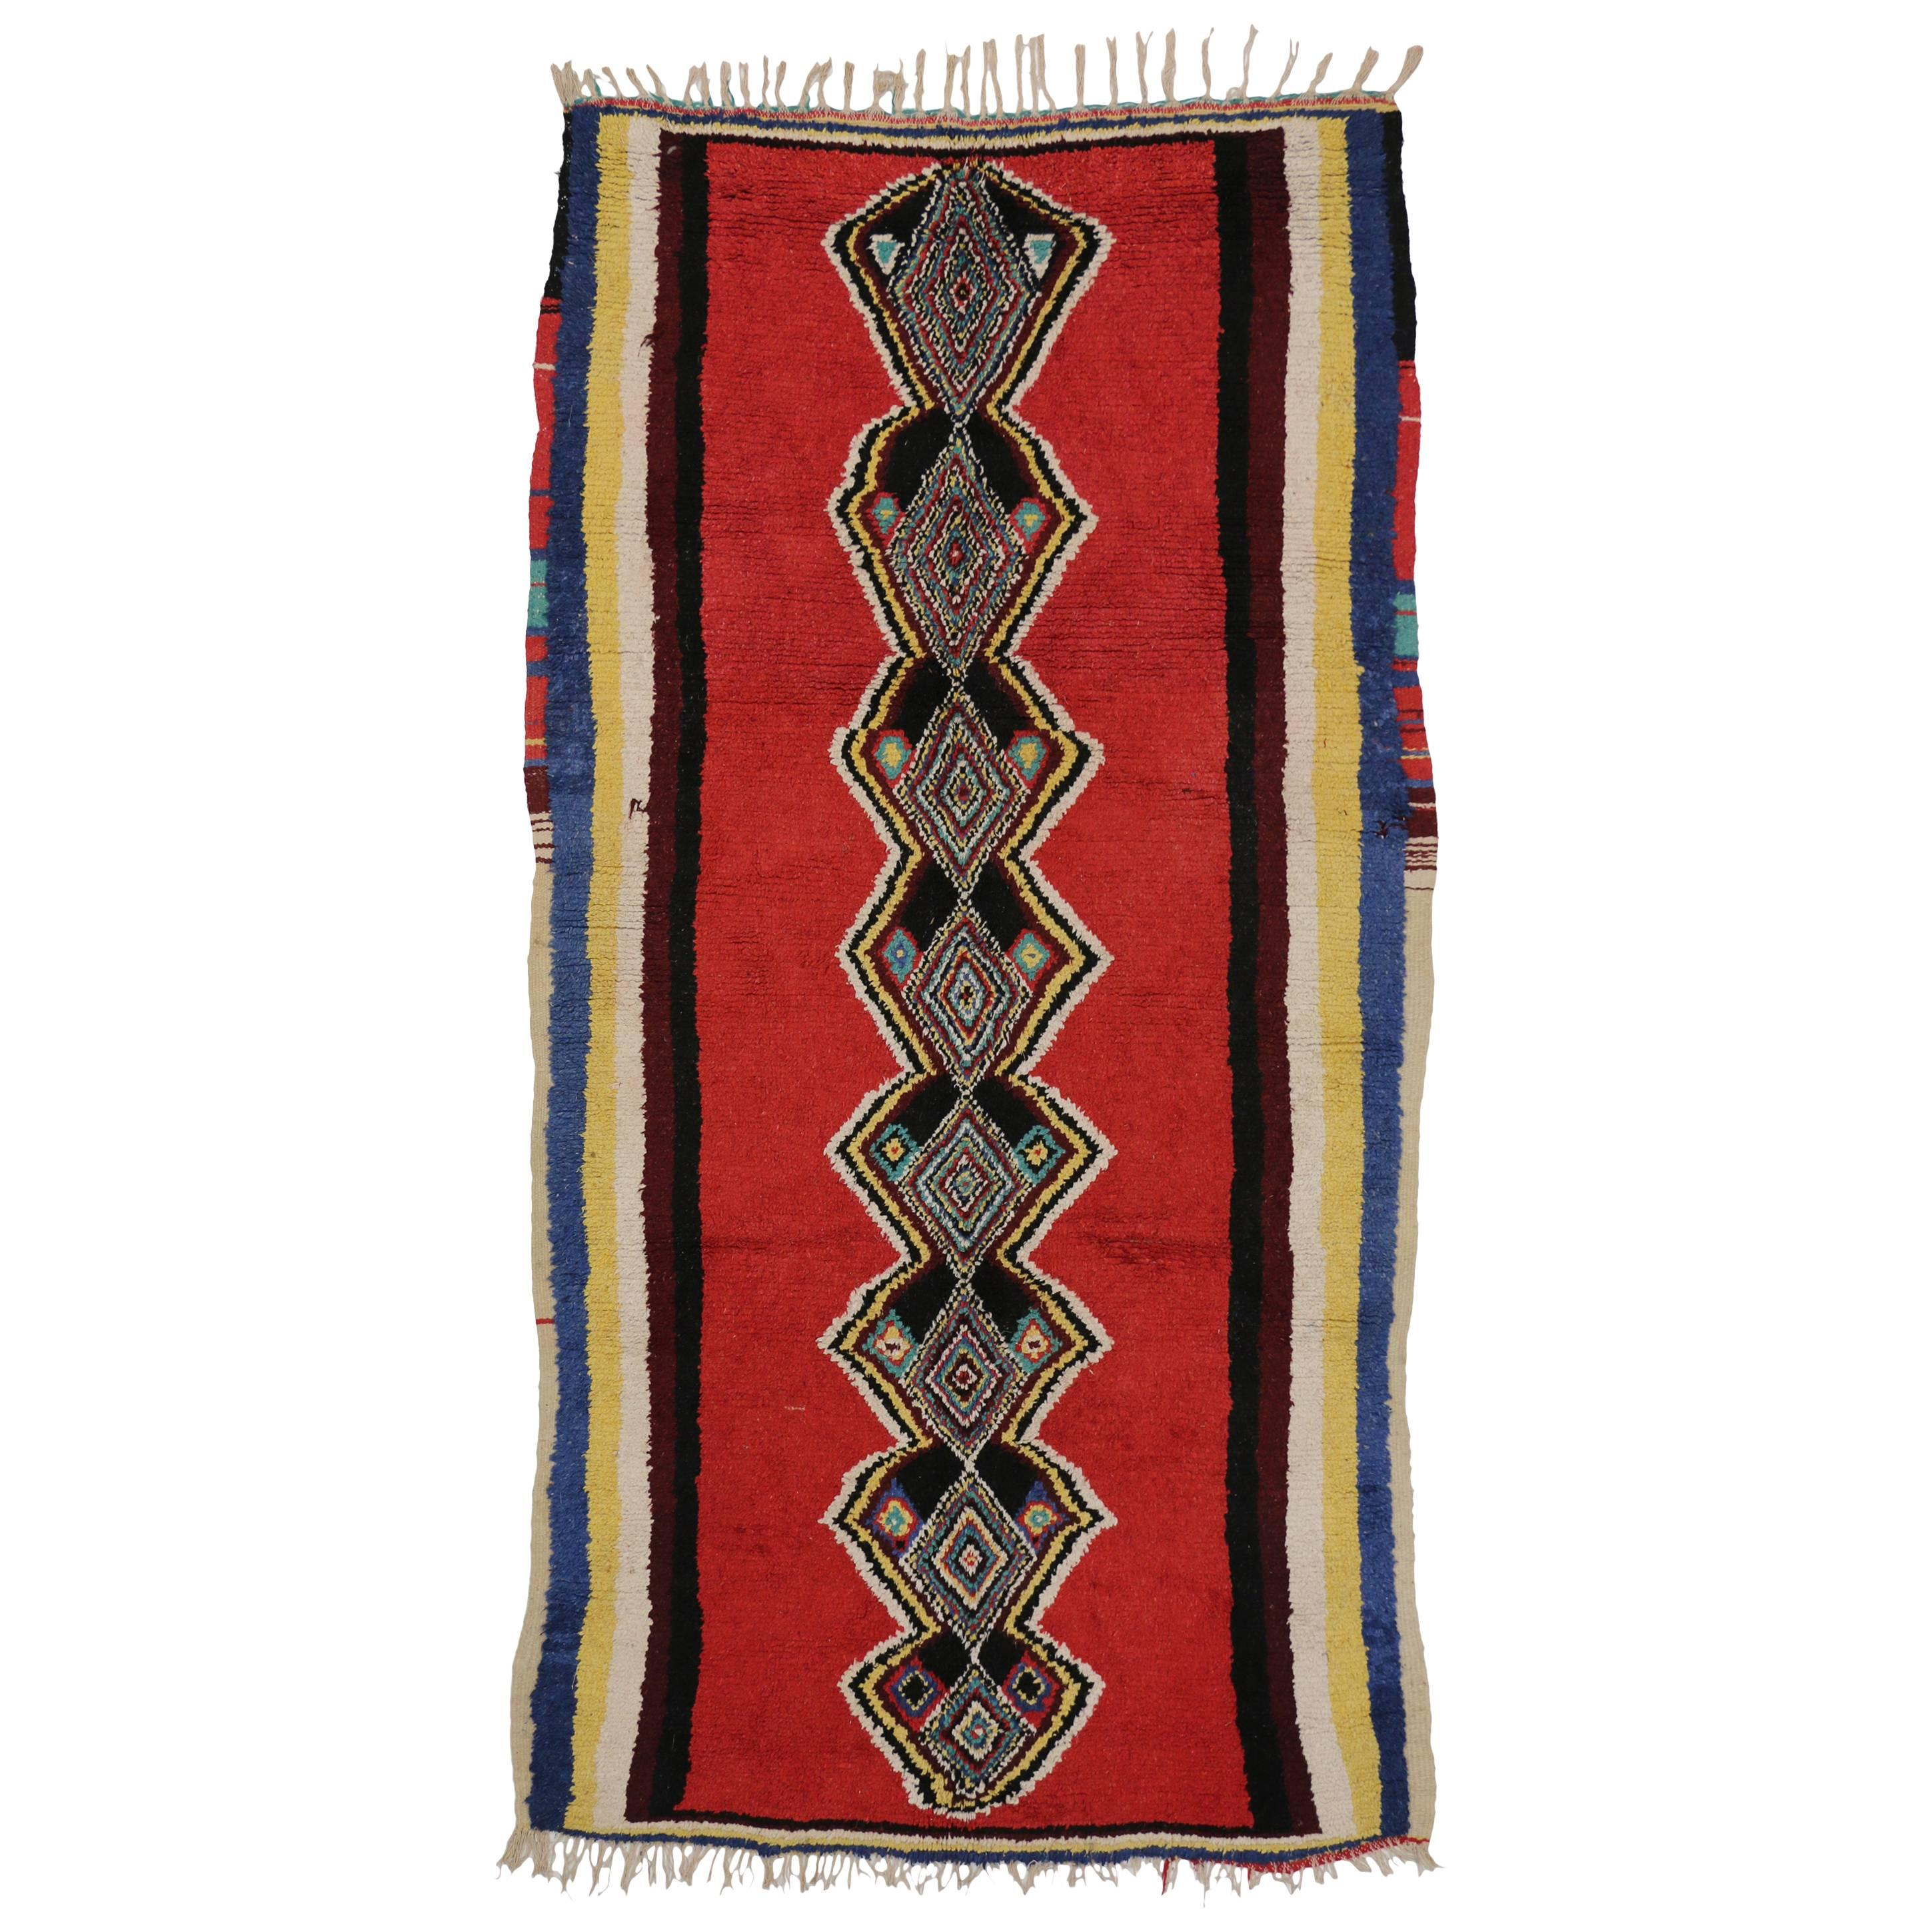 Vintage Moroccan Rug with Tribal Style, Berber Moroccan Rug